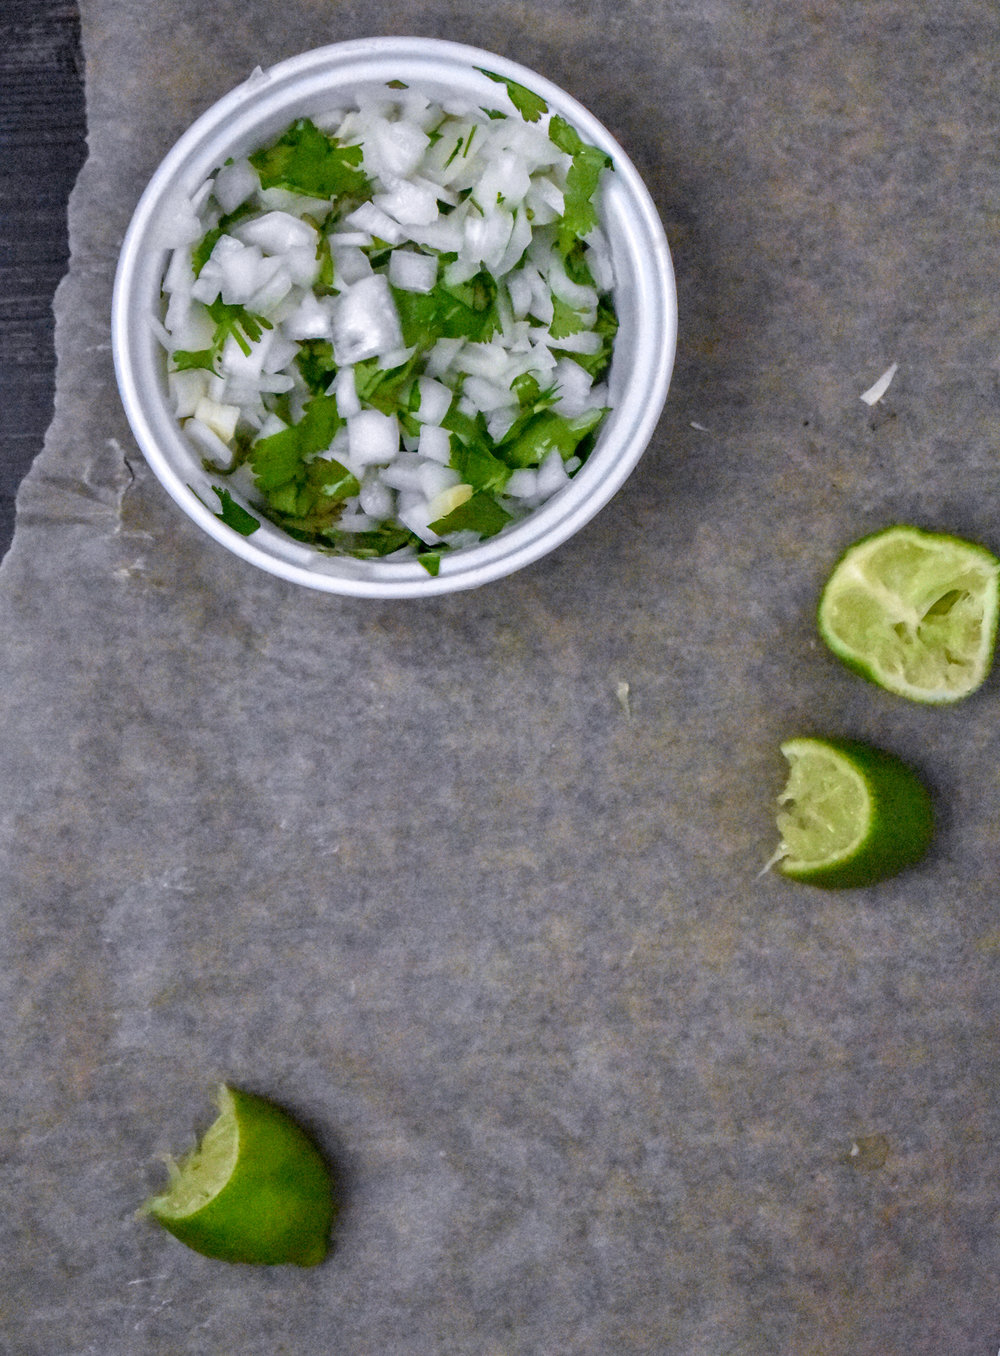 7. Lastly, dice some onions with cilantro and lime. Mix and set aside.